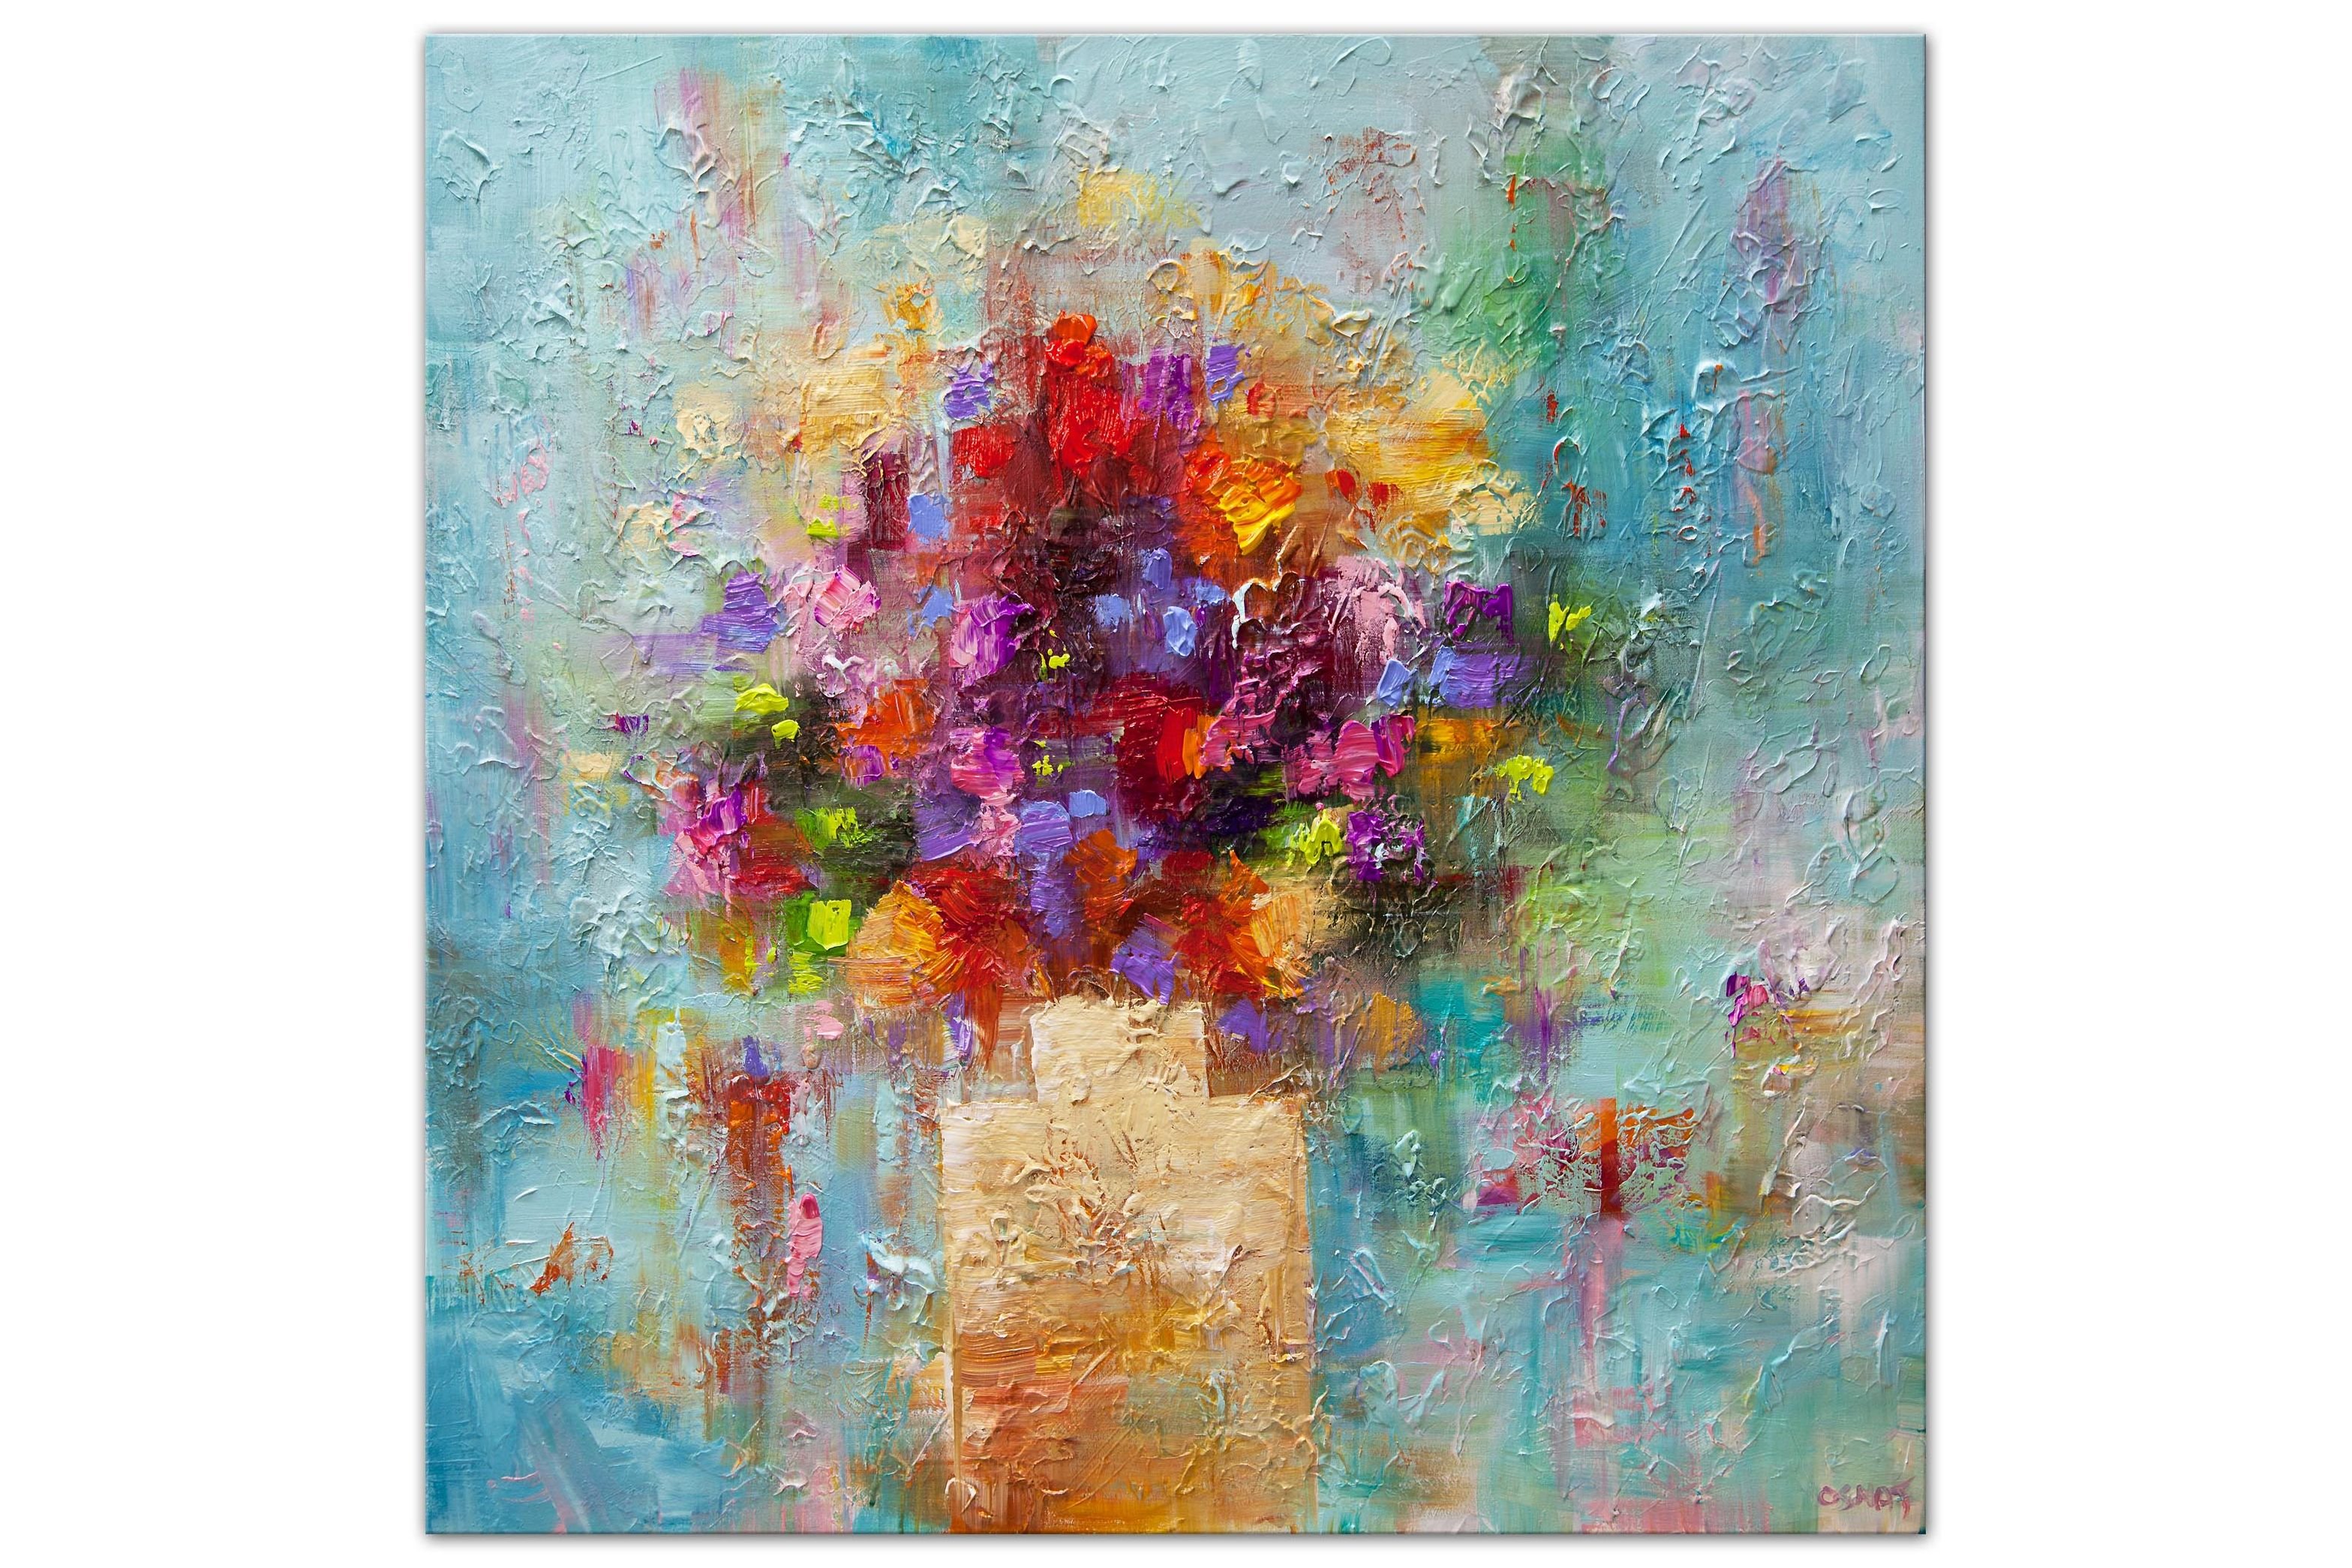 colorful textured modern abstract painting on white